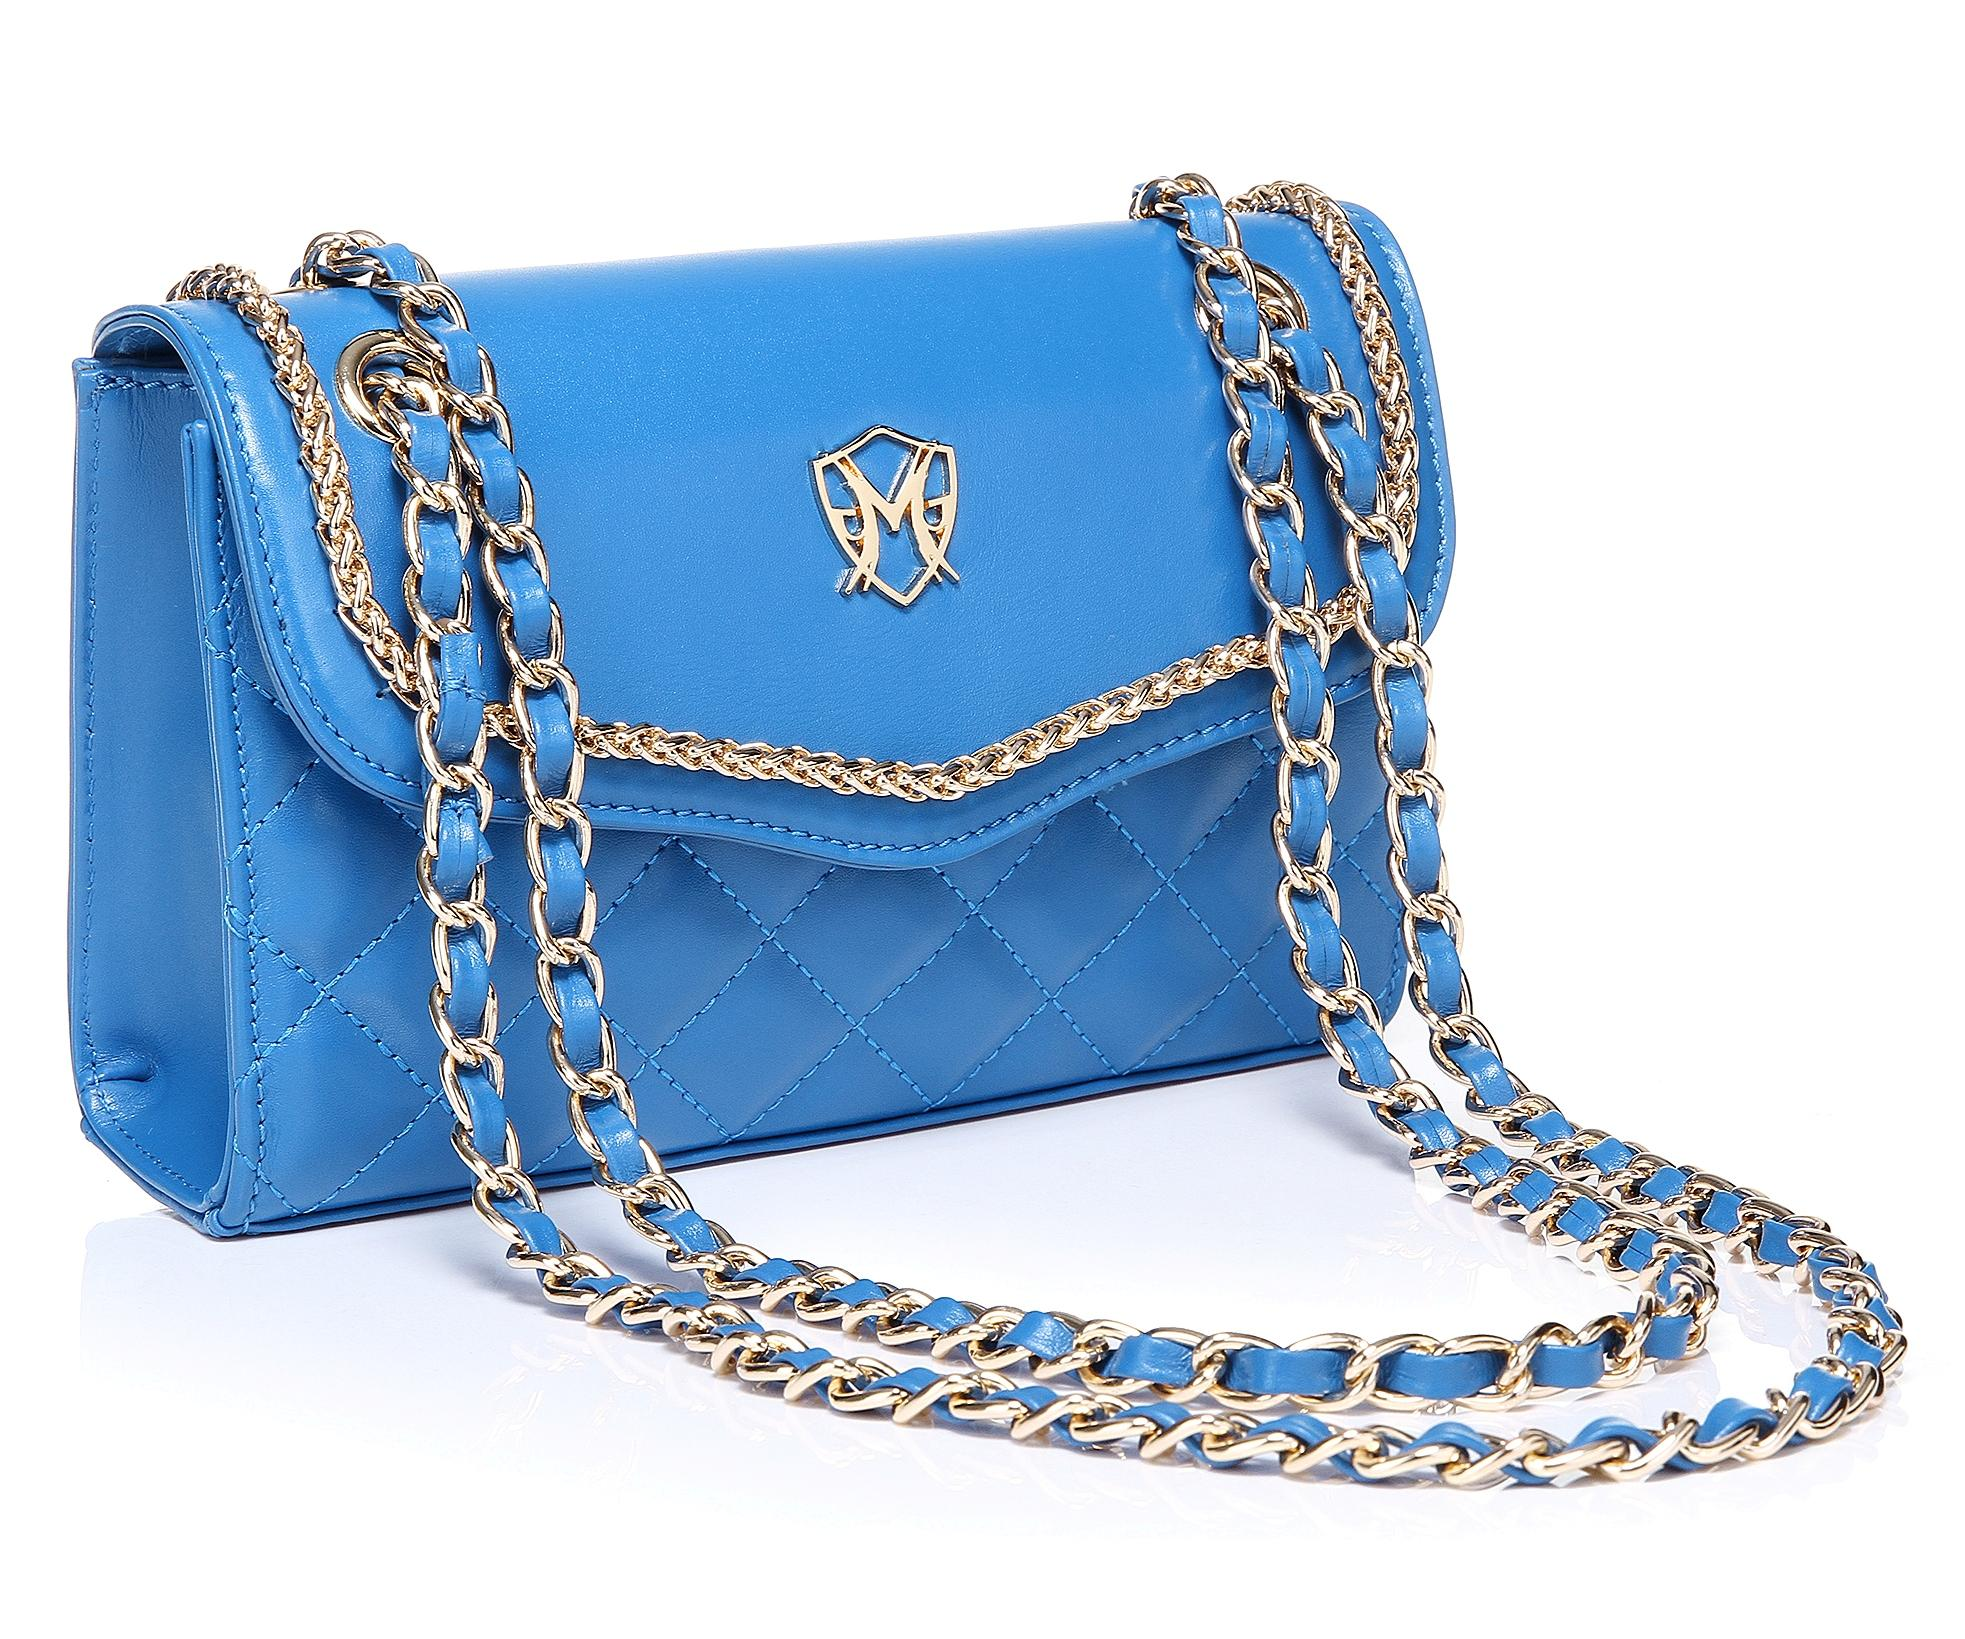 Leather Handbags-Deciding Between The Different Types